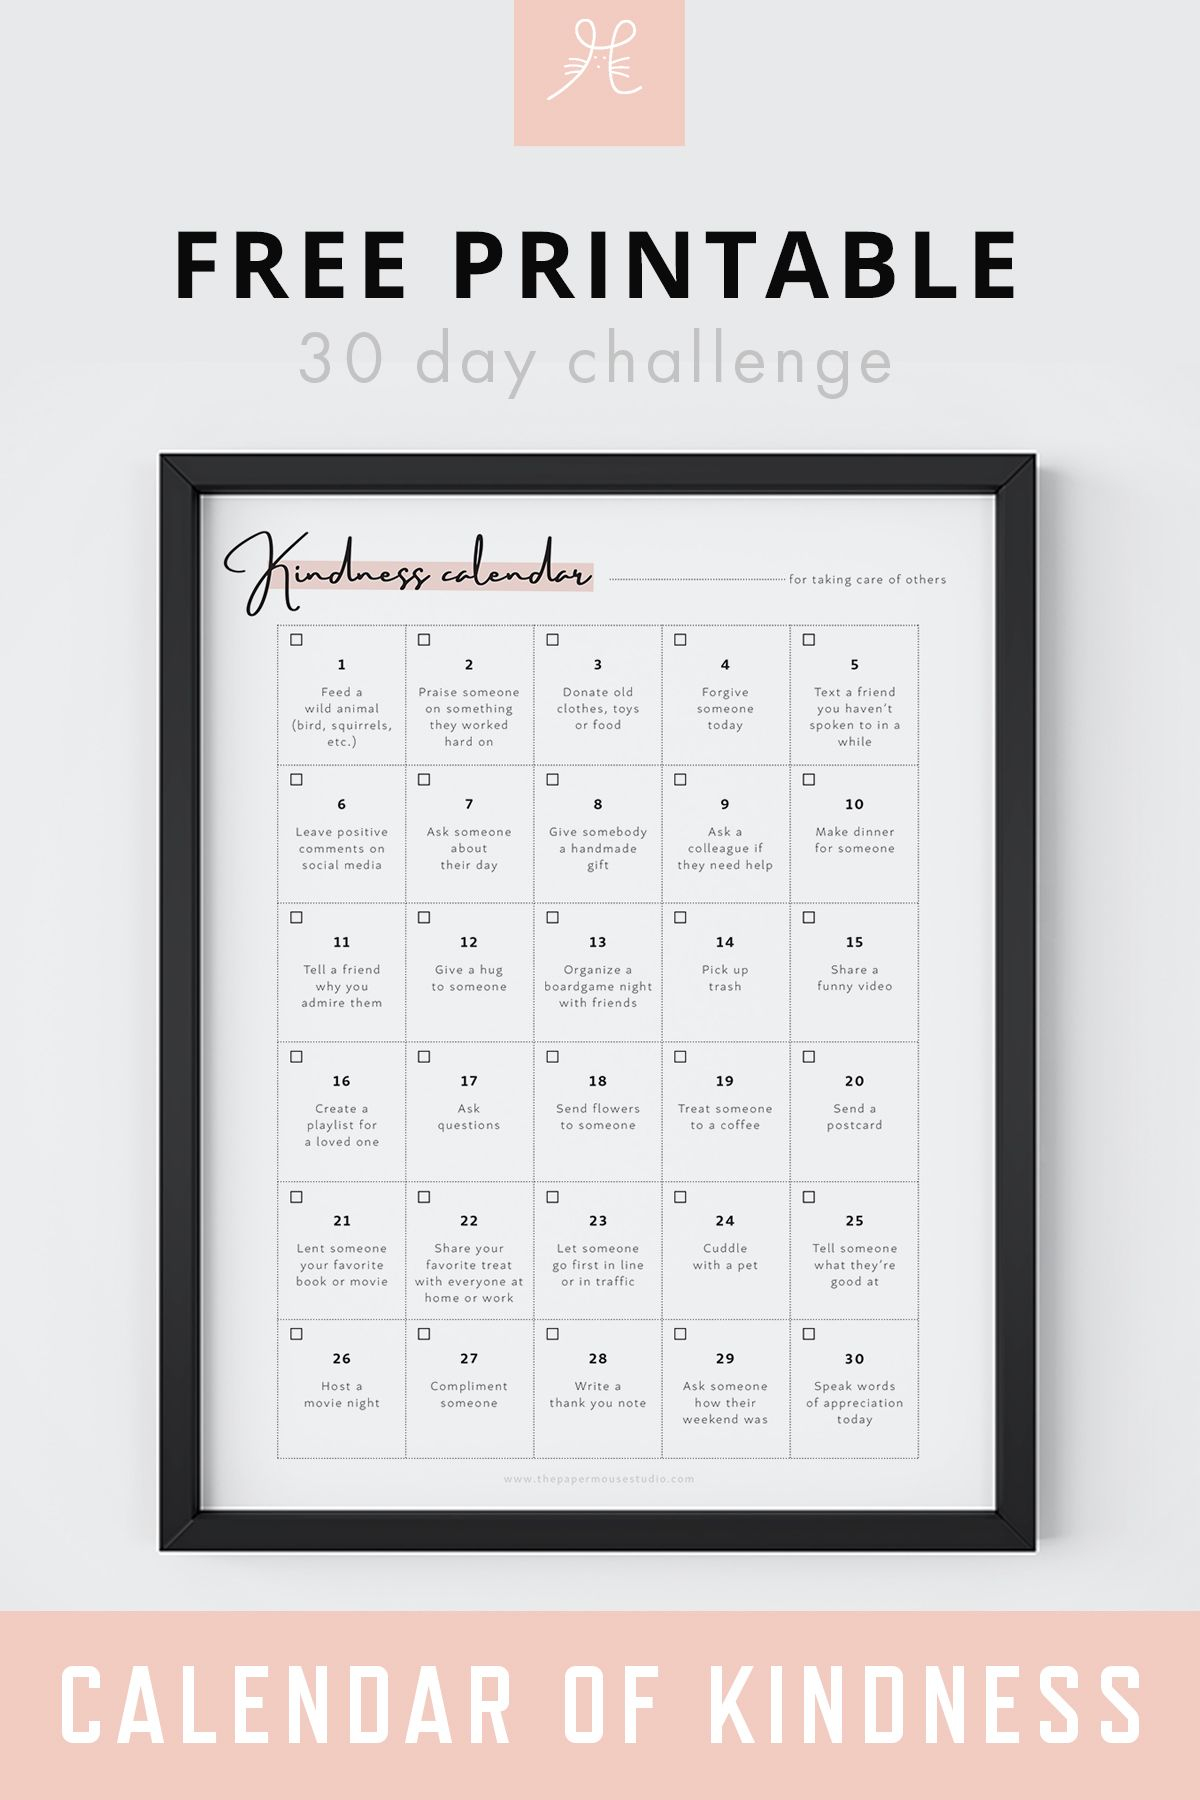 Free Downloads | Printables Freebies, Free, Inspirational Quotes Within 30 Day Challenge Calendar